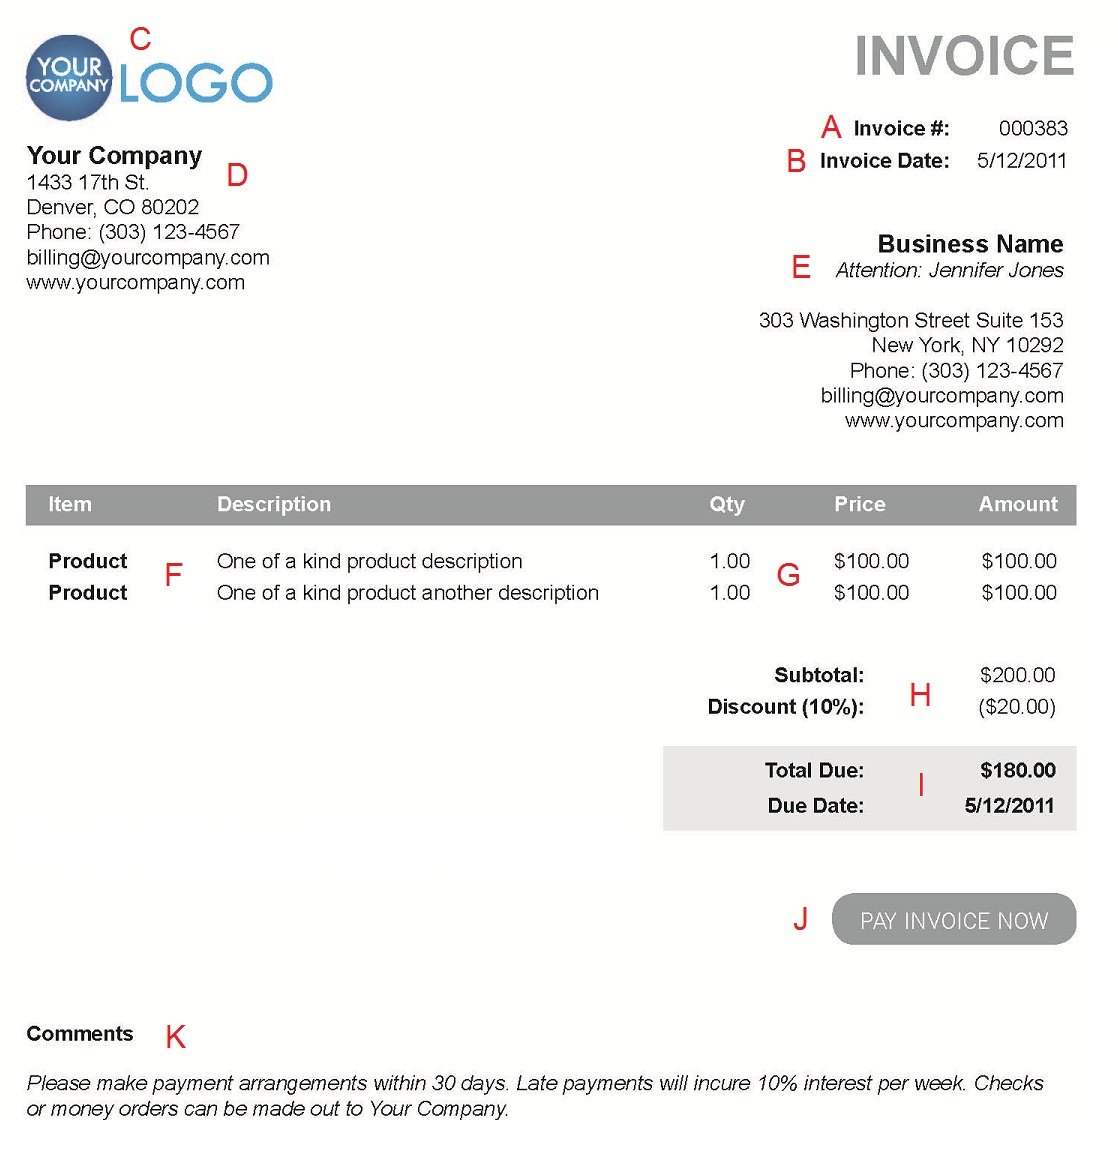 Picnictoimpeachus  Terrific The  Different Sections Of An Electronic Payment Invoice With Remarkable A  With Appealing What Is A Paypal Invoice Also Photography Invoice Template In Addition Zoho Invoices And Blank Commercial Invoice As Well As Service Invoice Additionally Anax Invoice From Paysimplecom With Picnictoimpeachus  Remarkable The  Different Sections Of An Electronic Payment Invoice With Appealing A  And Terrific What Is A Paypal Invoice Also Photography Invoice Template In Addition Zoho Invoices From Paysimplecom